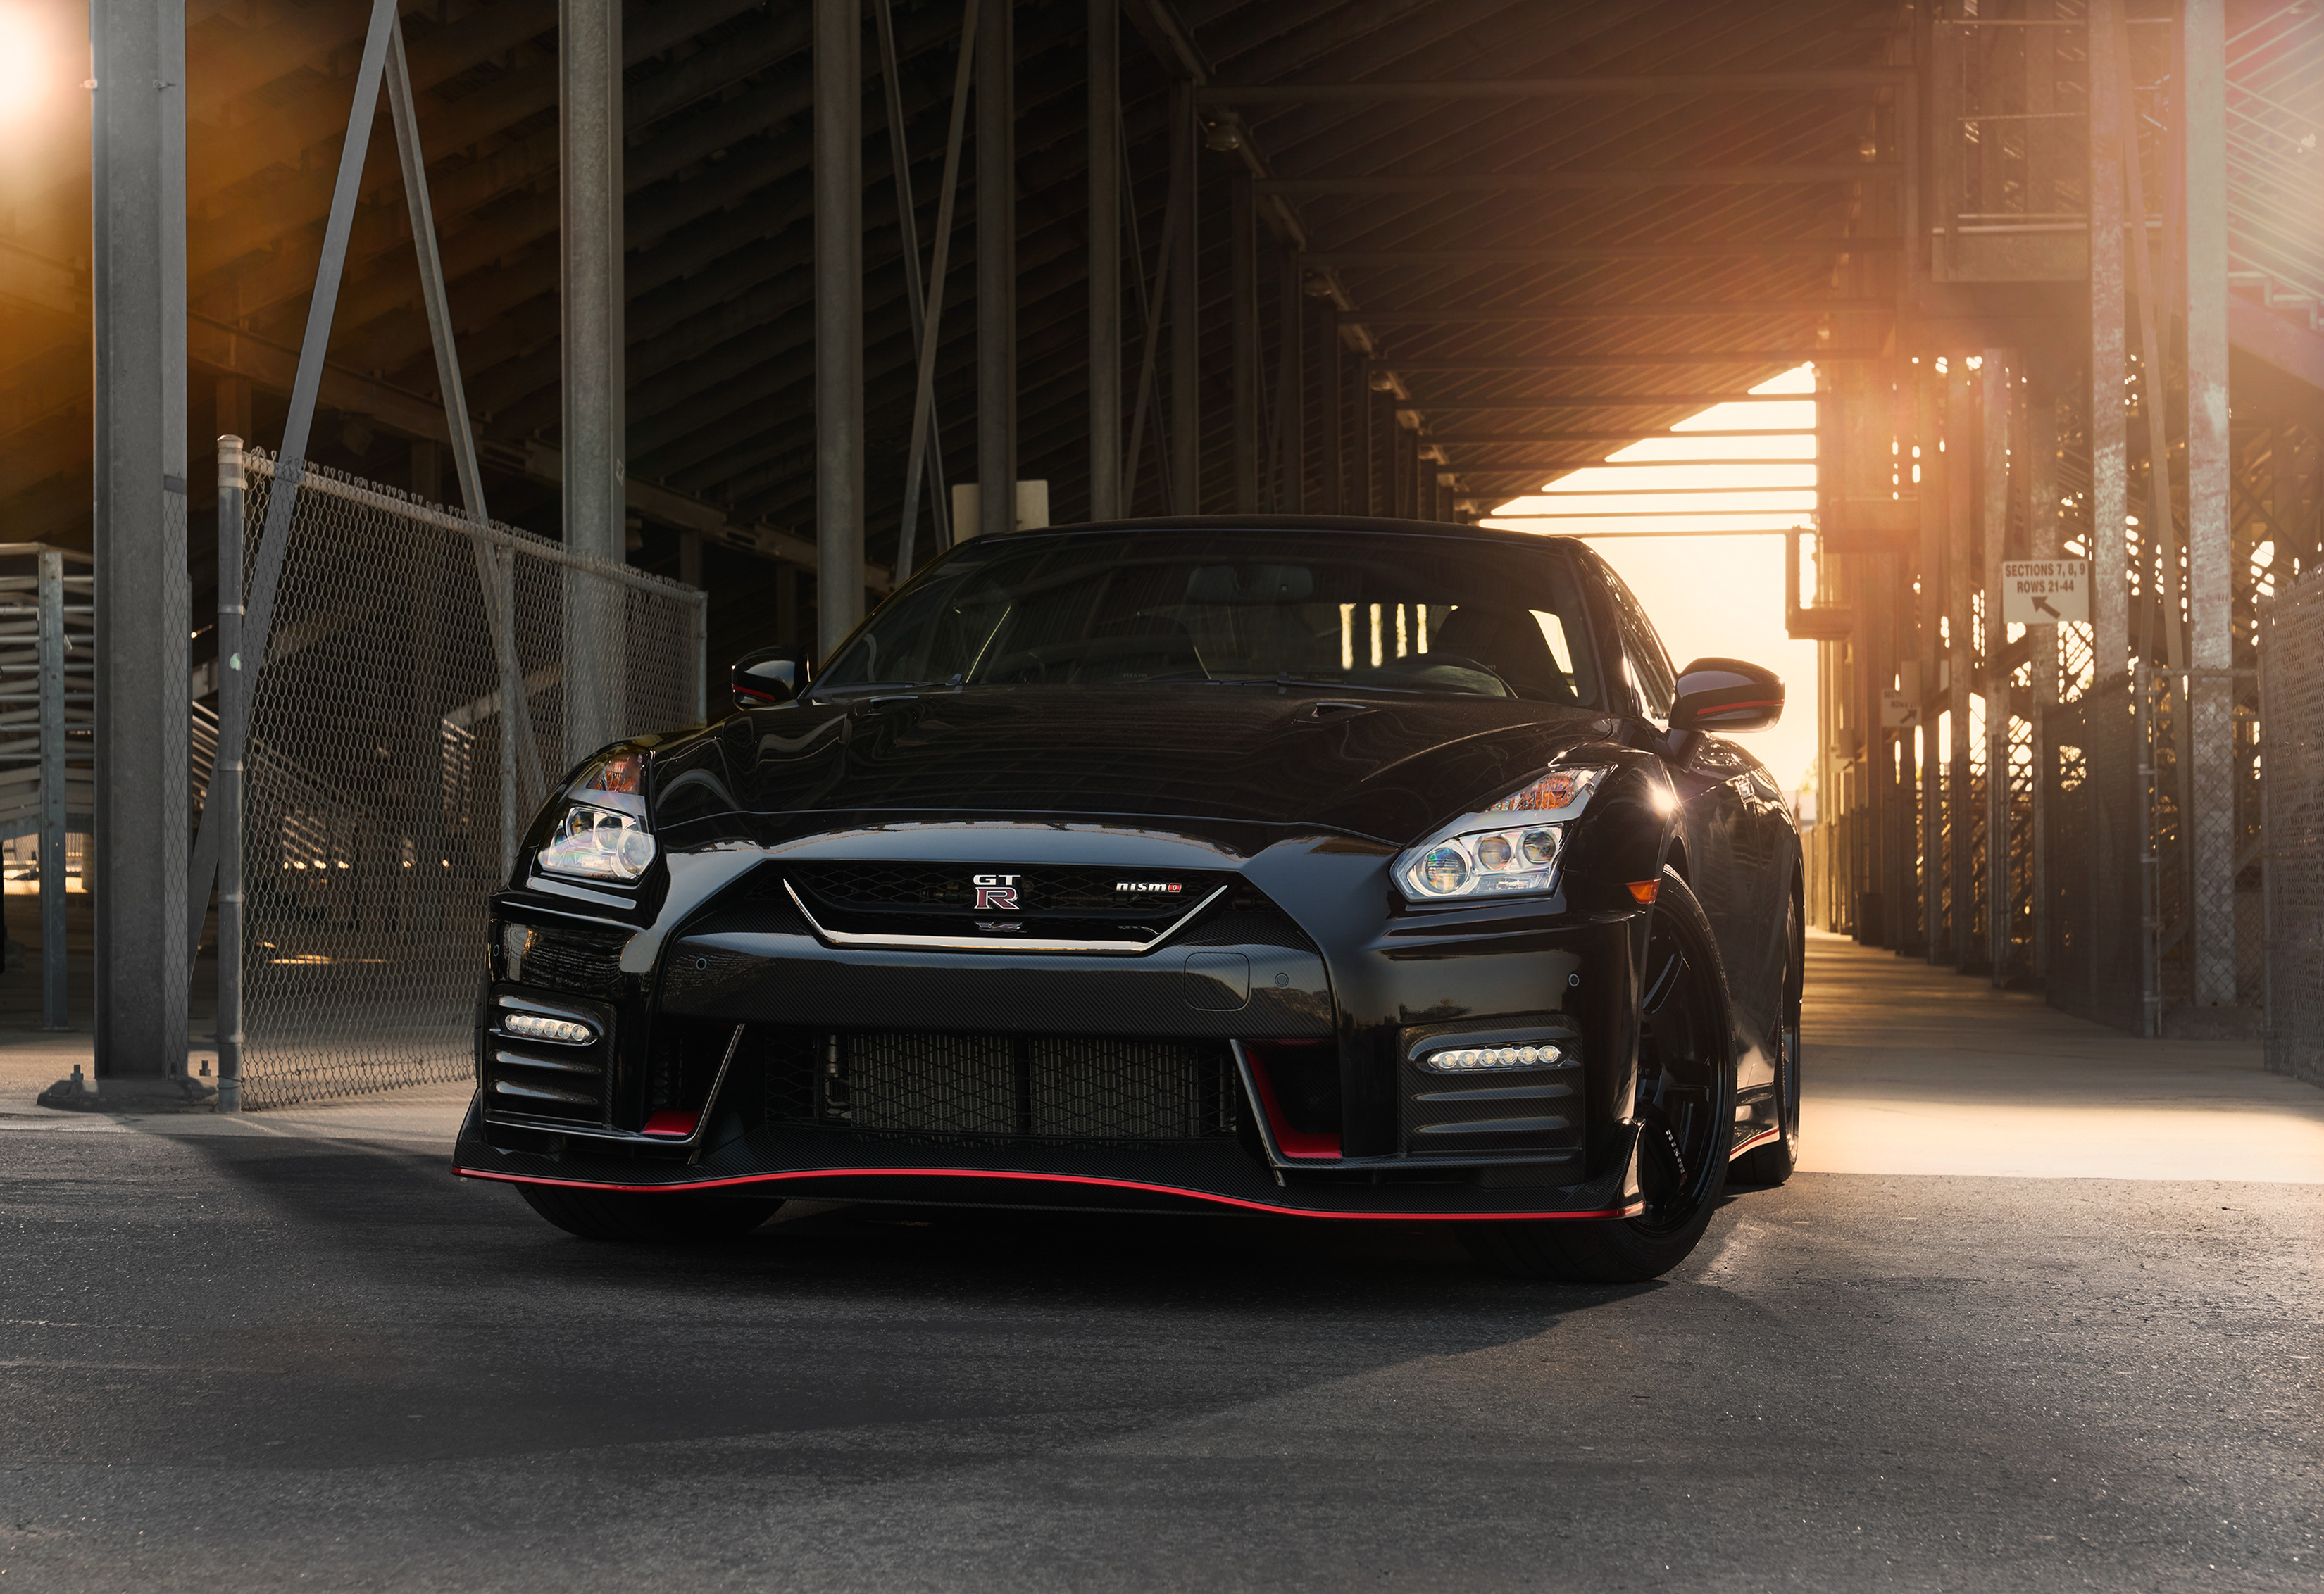 2018 nissan gt r nismo 4k 1548528008 - 2018 Nissan GT R Nismo 4k - nissan wallpapers, nissan gtr wallpapers, hd-wallpapers, cars wallpapers, 2018 cars wallpapers